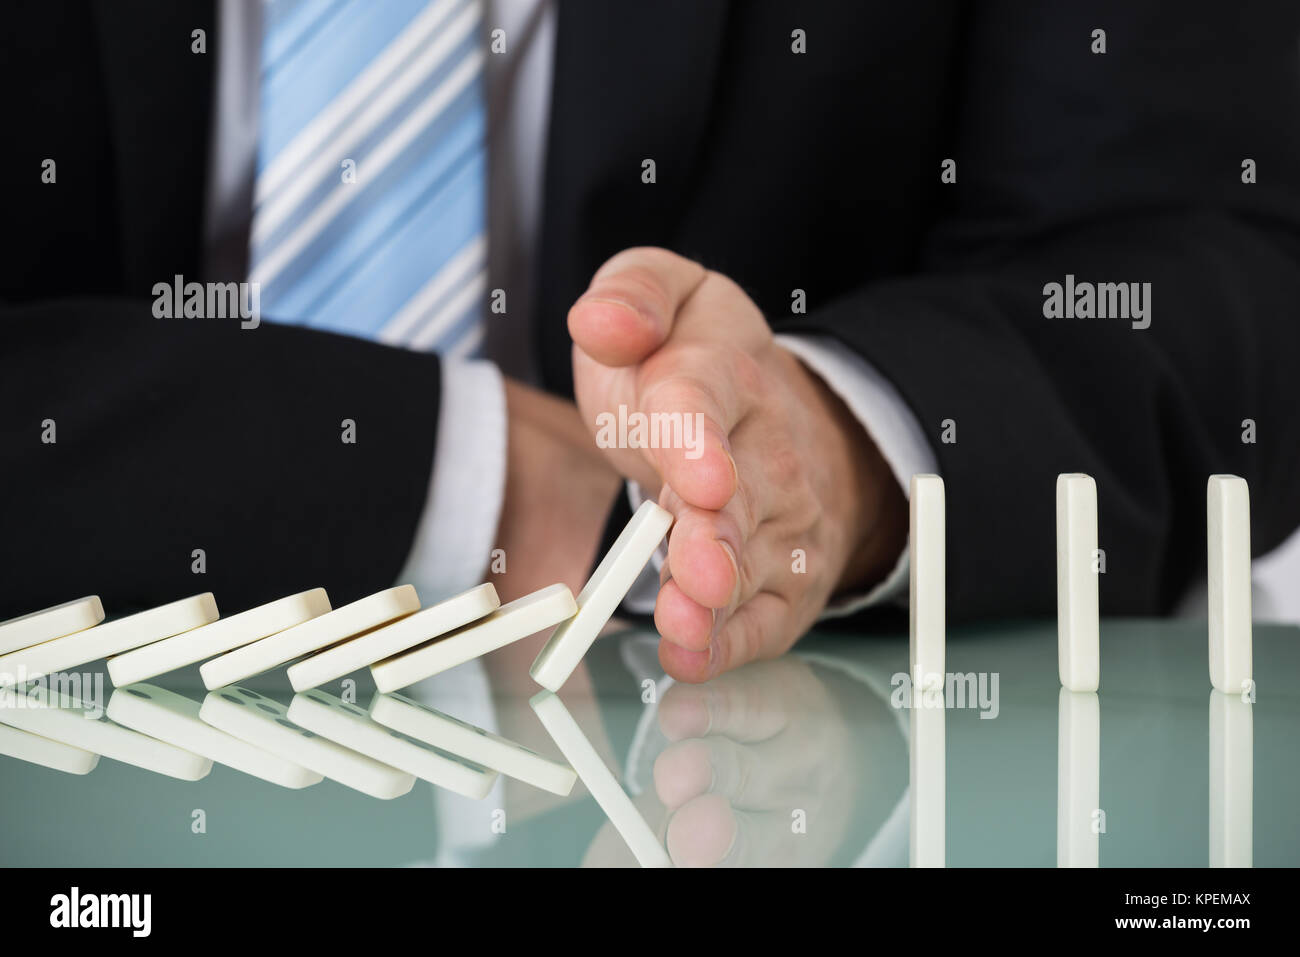 Businessperson Stopping Dominos Falling On Desk - Stock Image